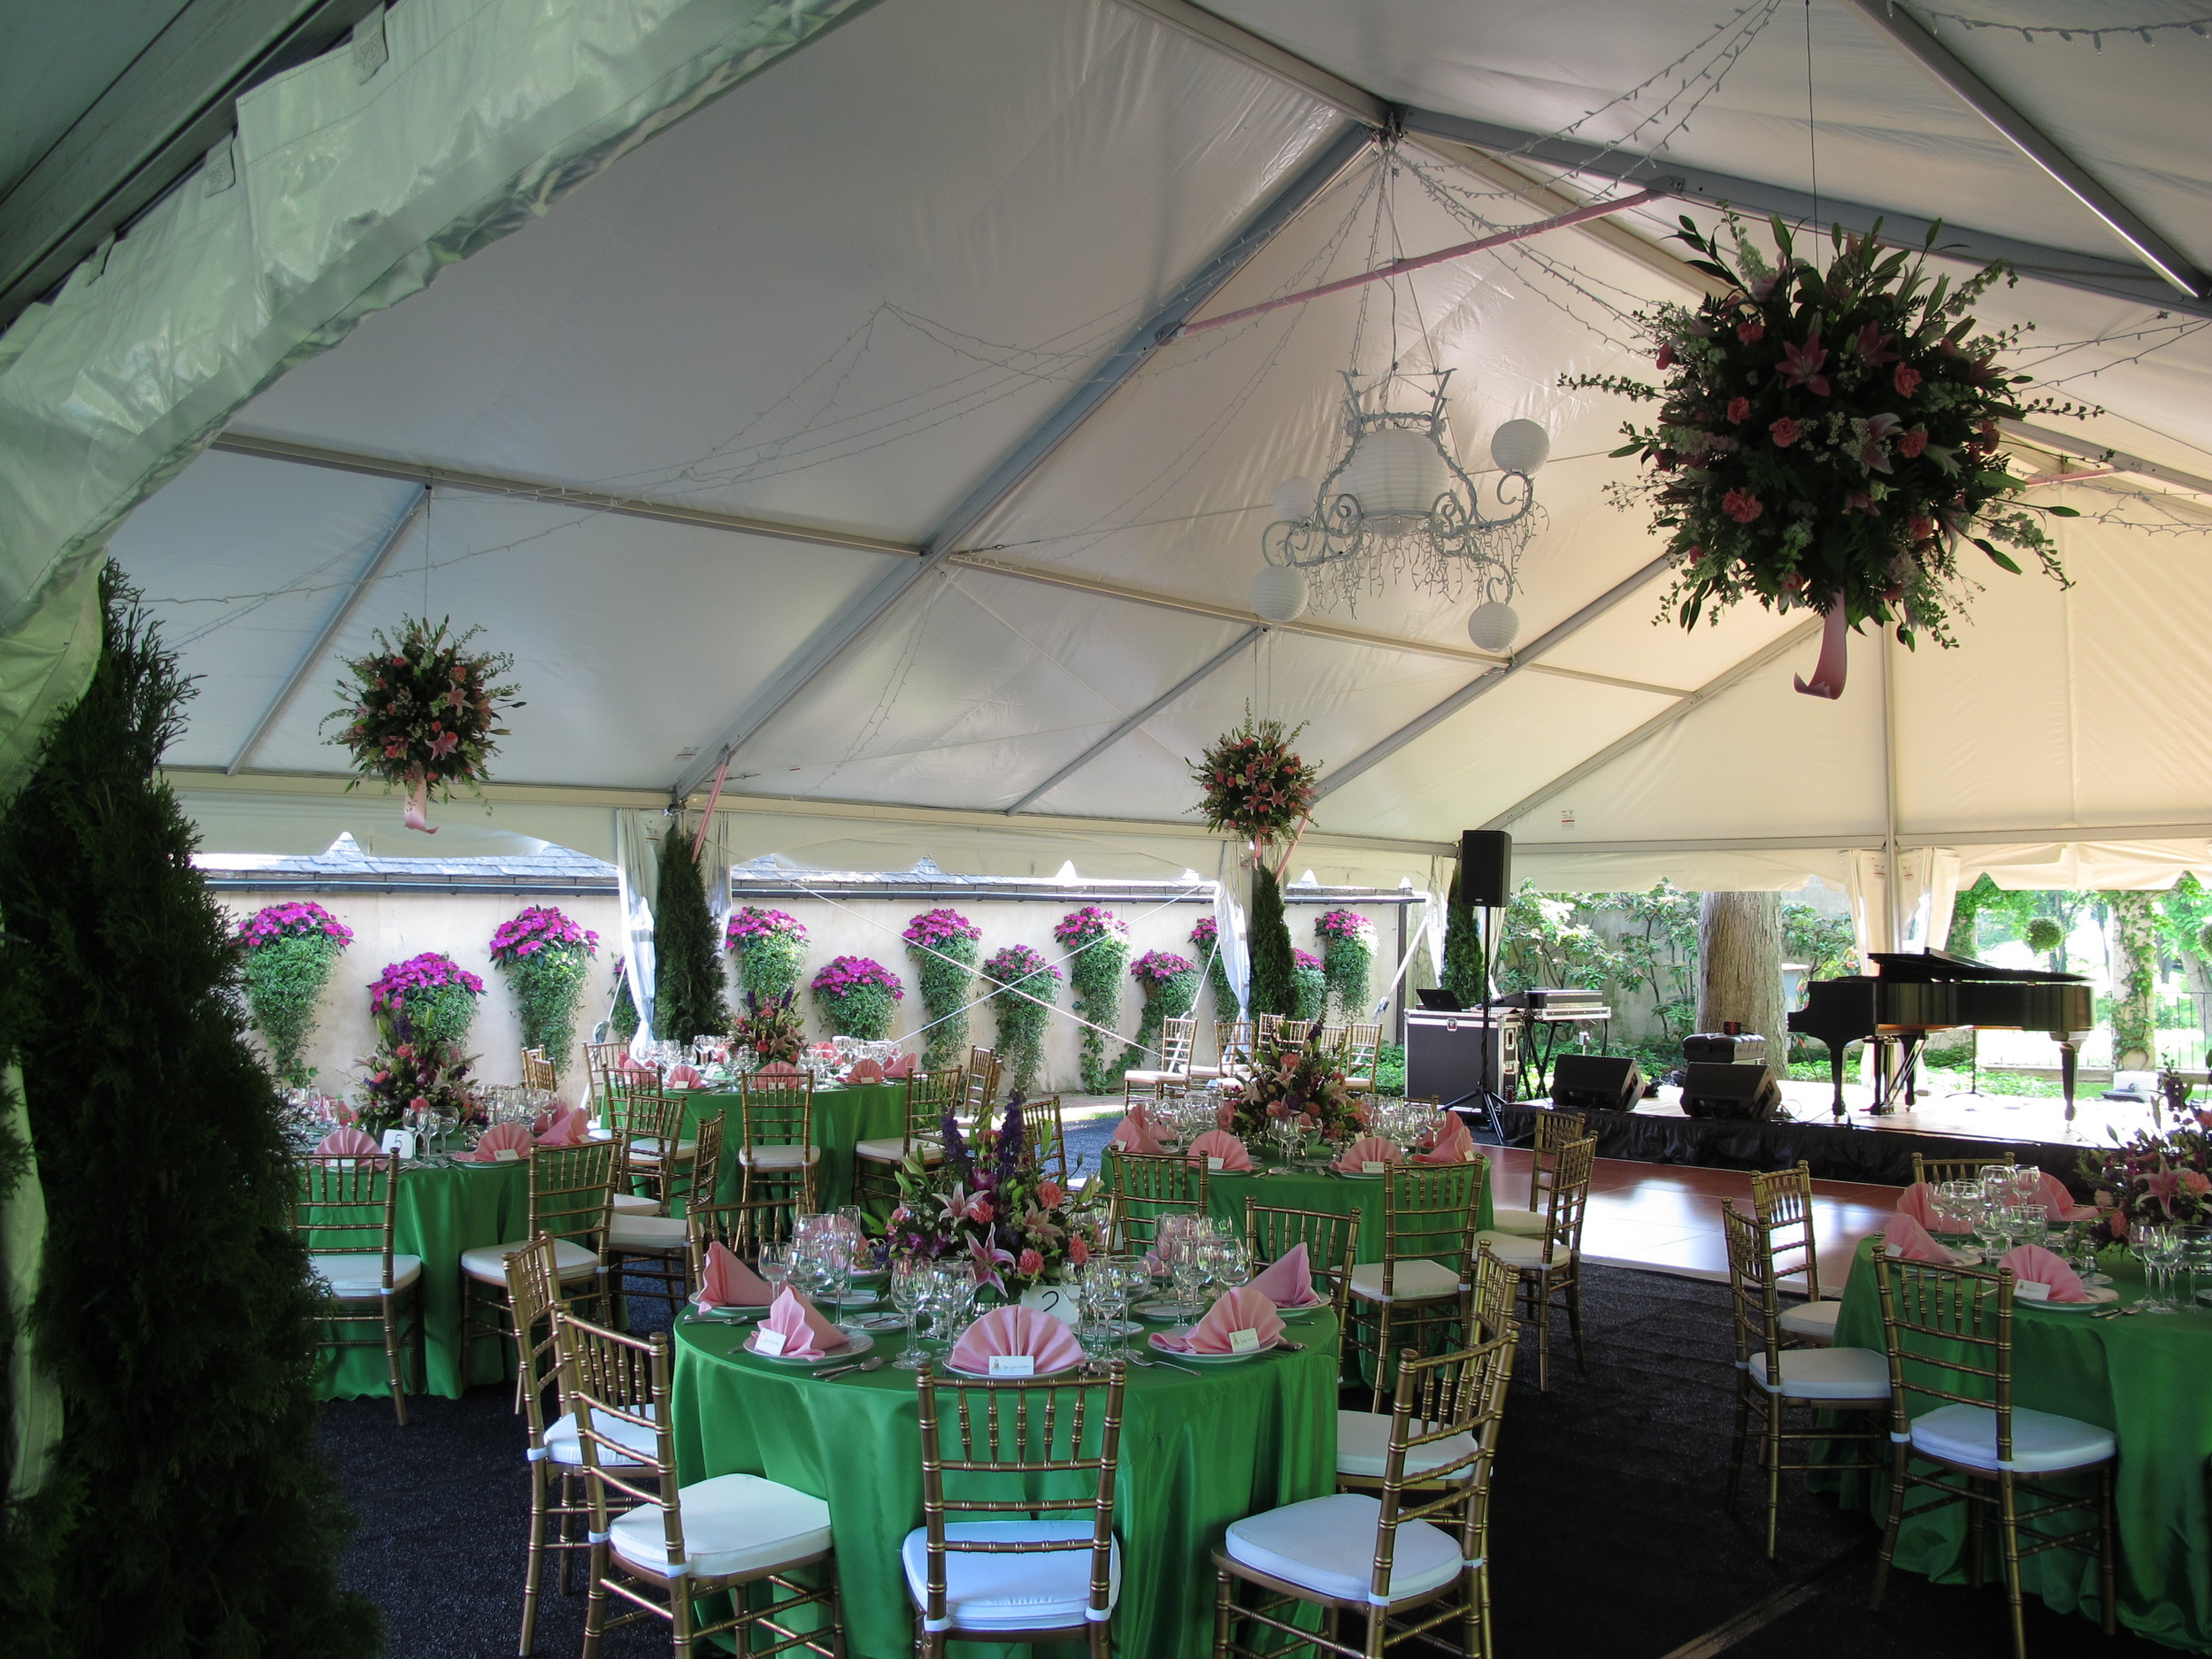 Party rentals in Wilkes-Barre